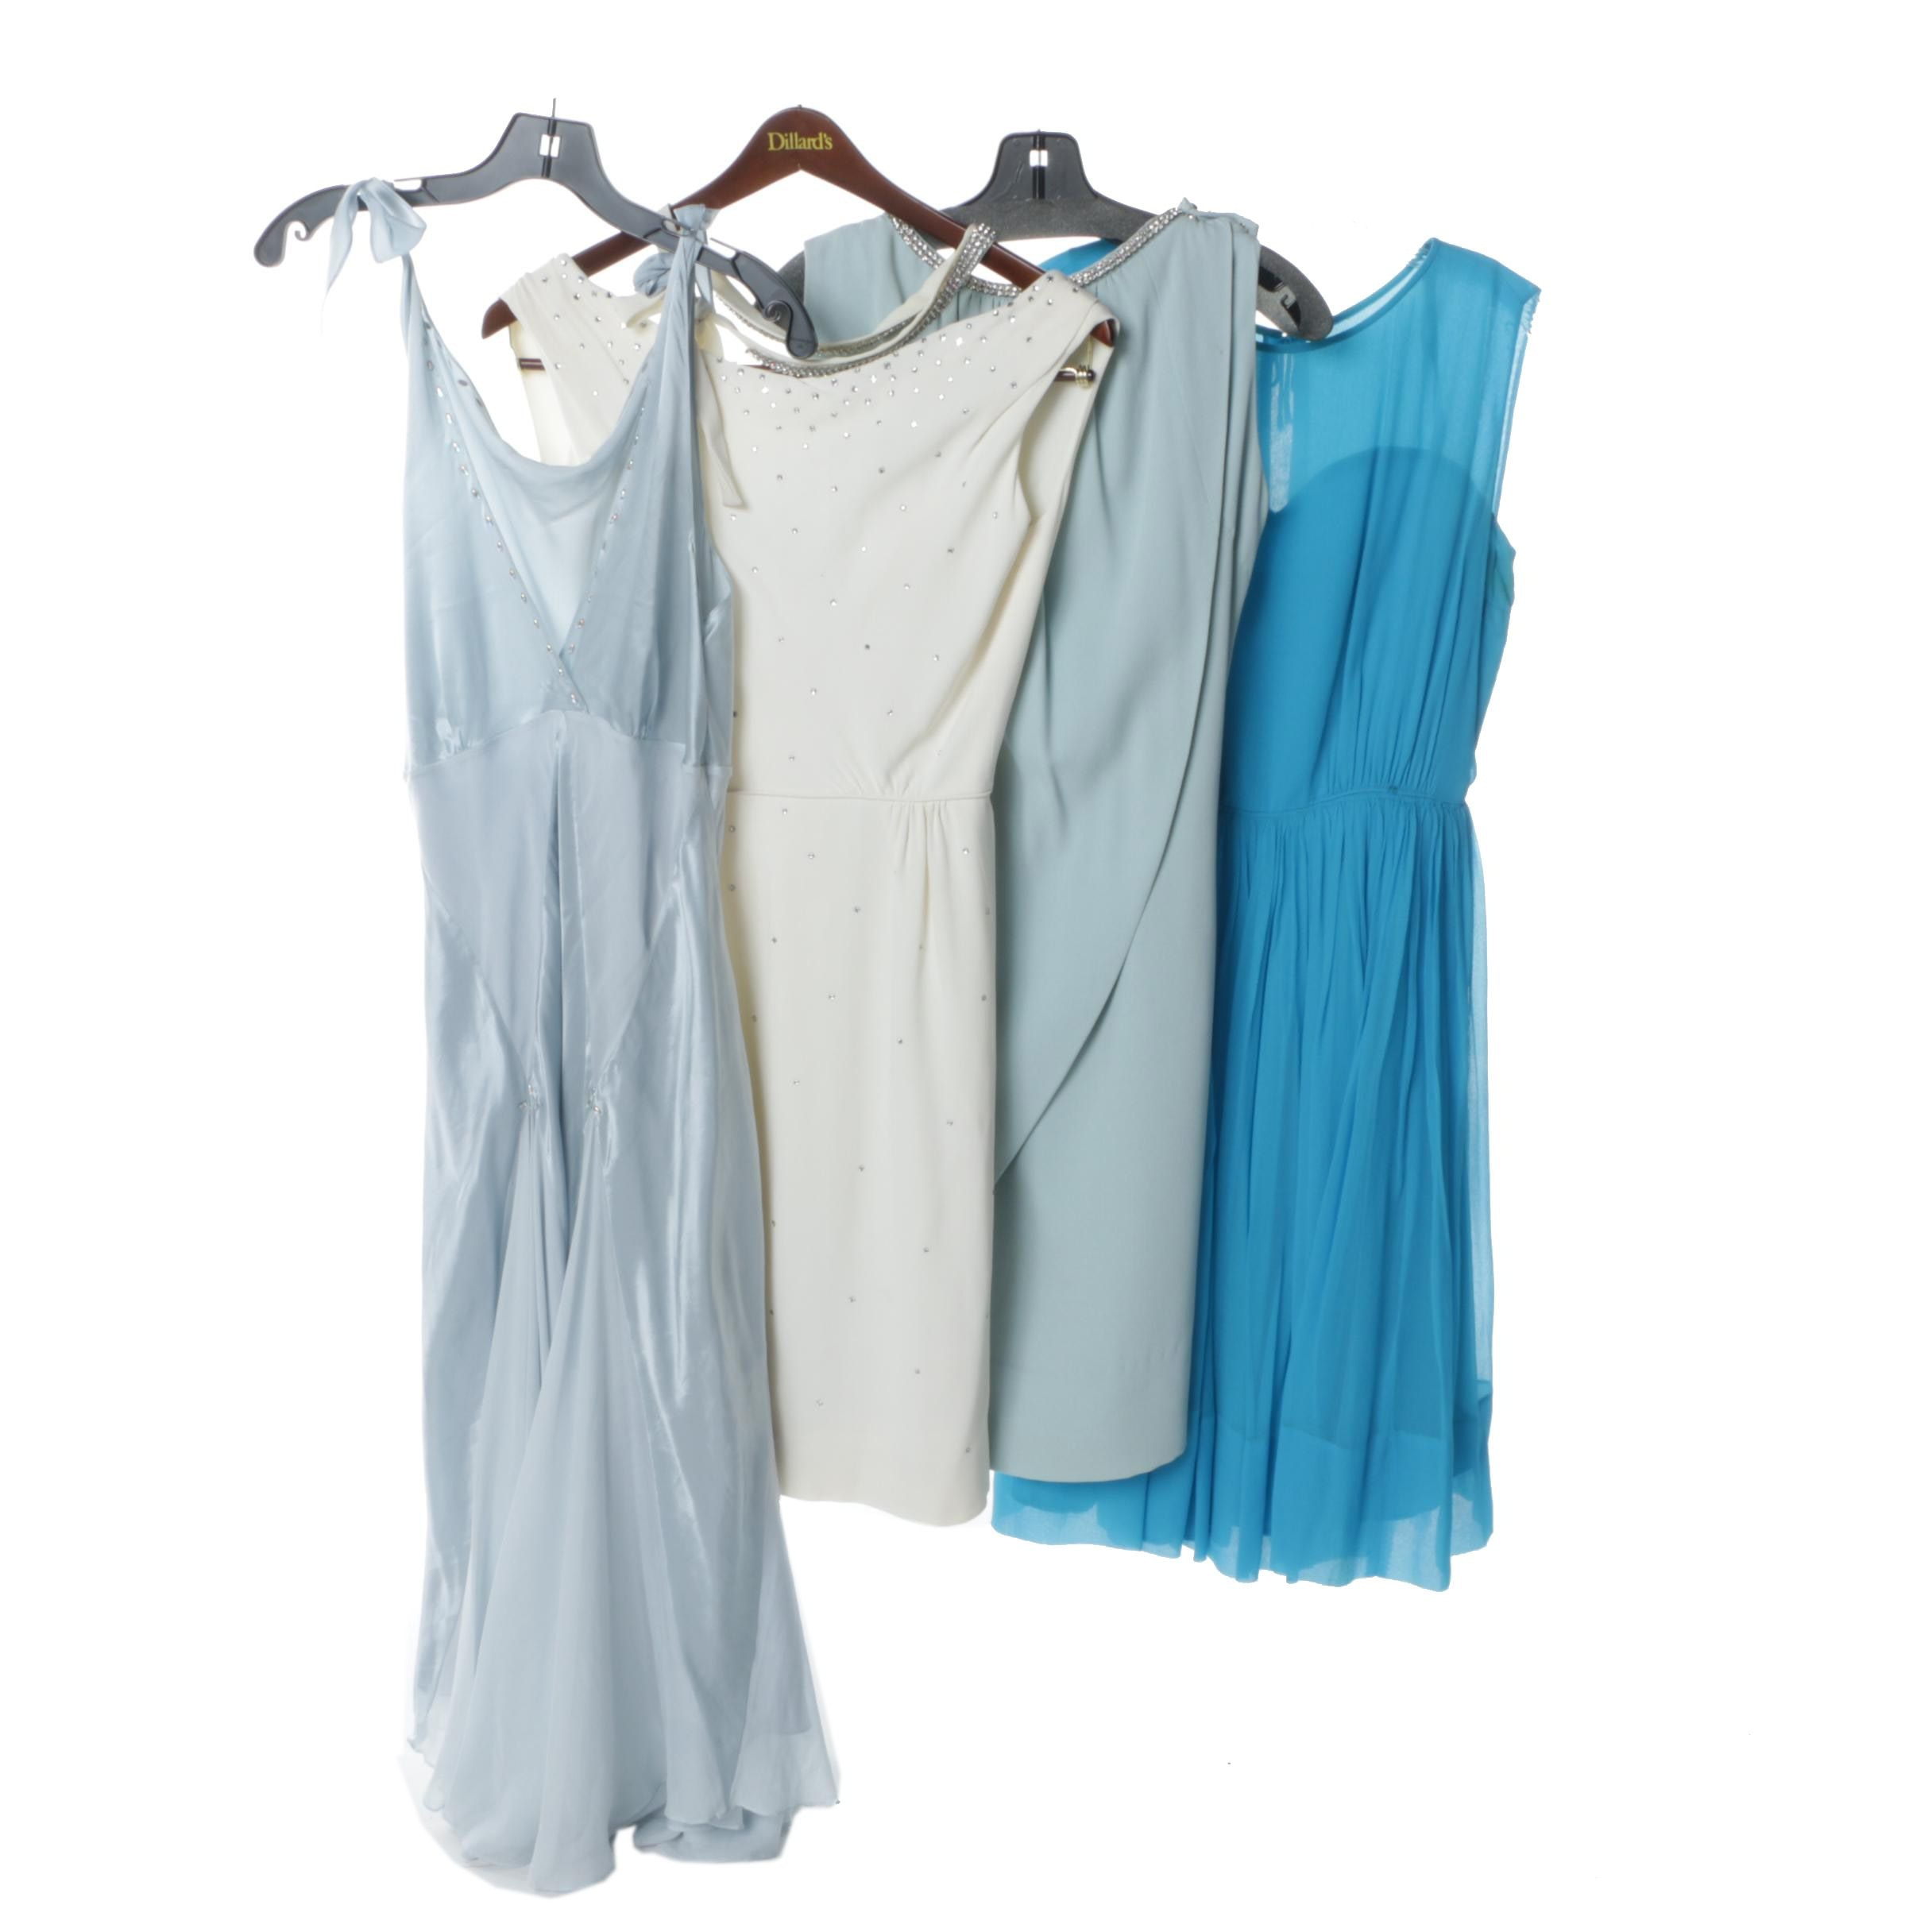 1970s Evening Dresses Including Silk, Sheer, Iridescent Rhinestones